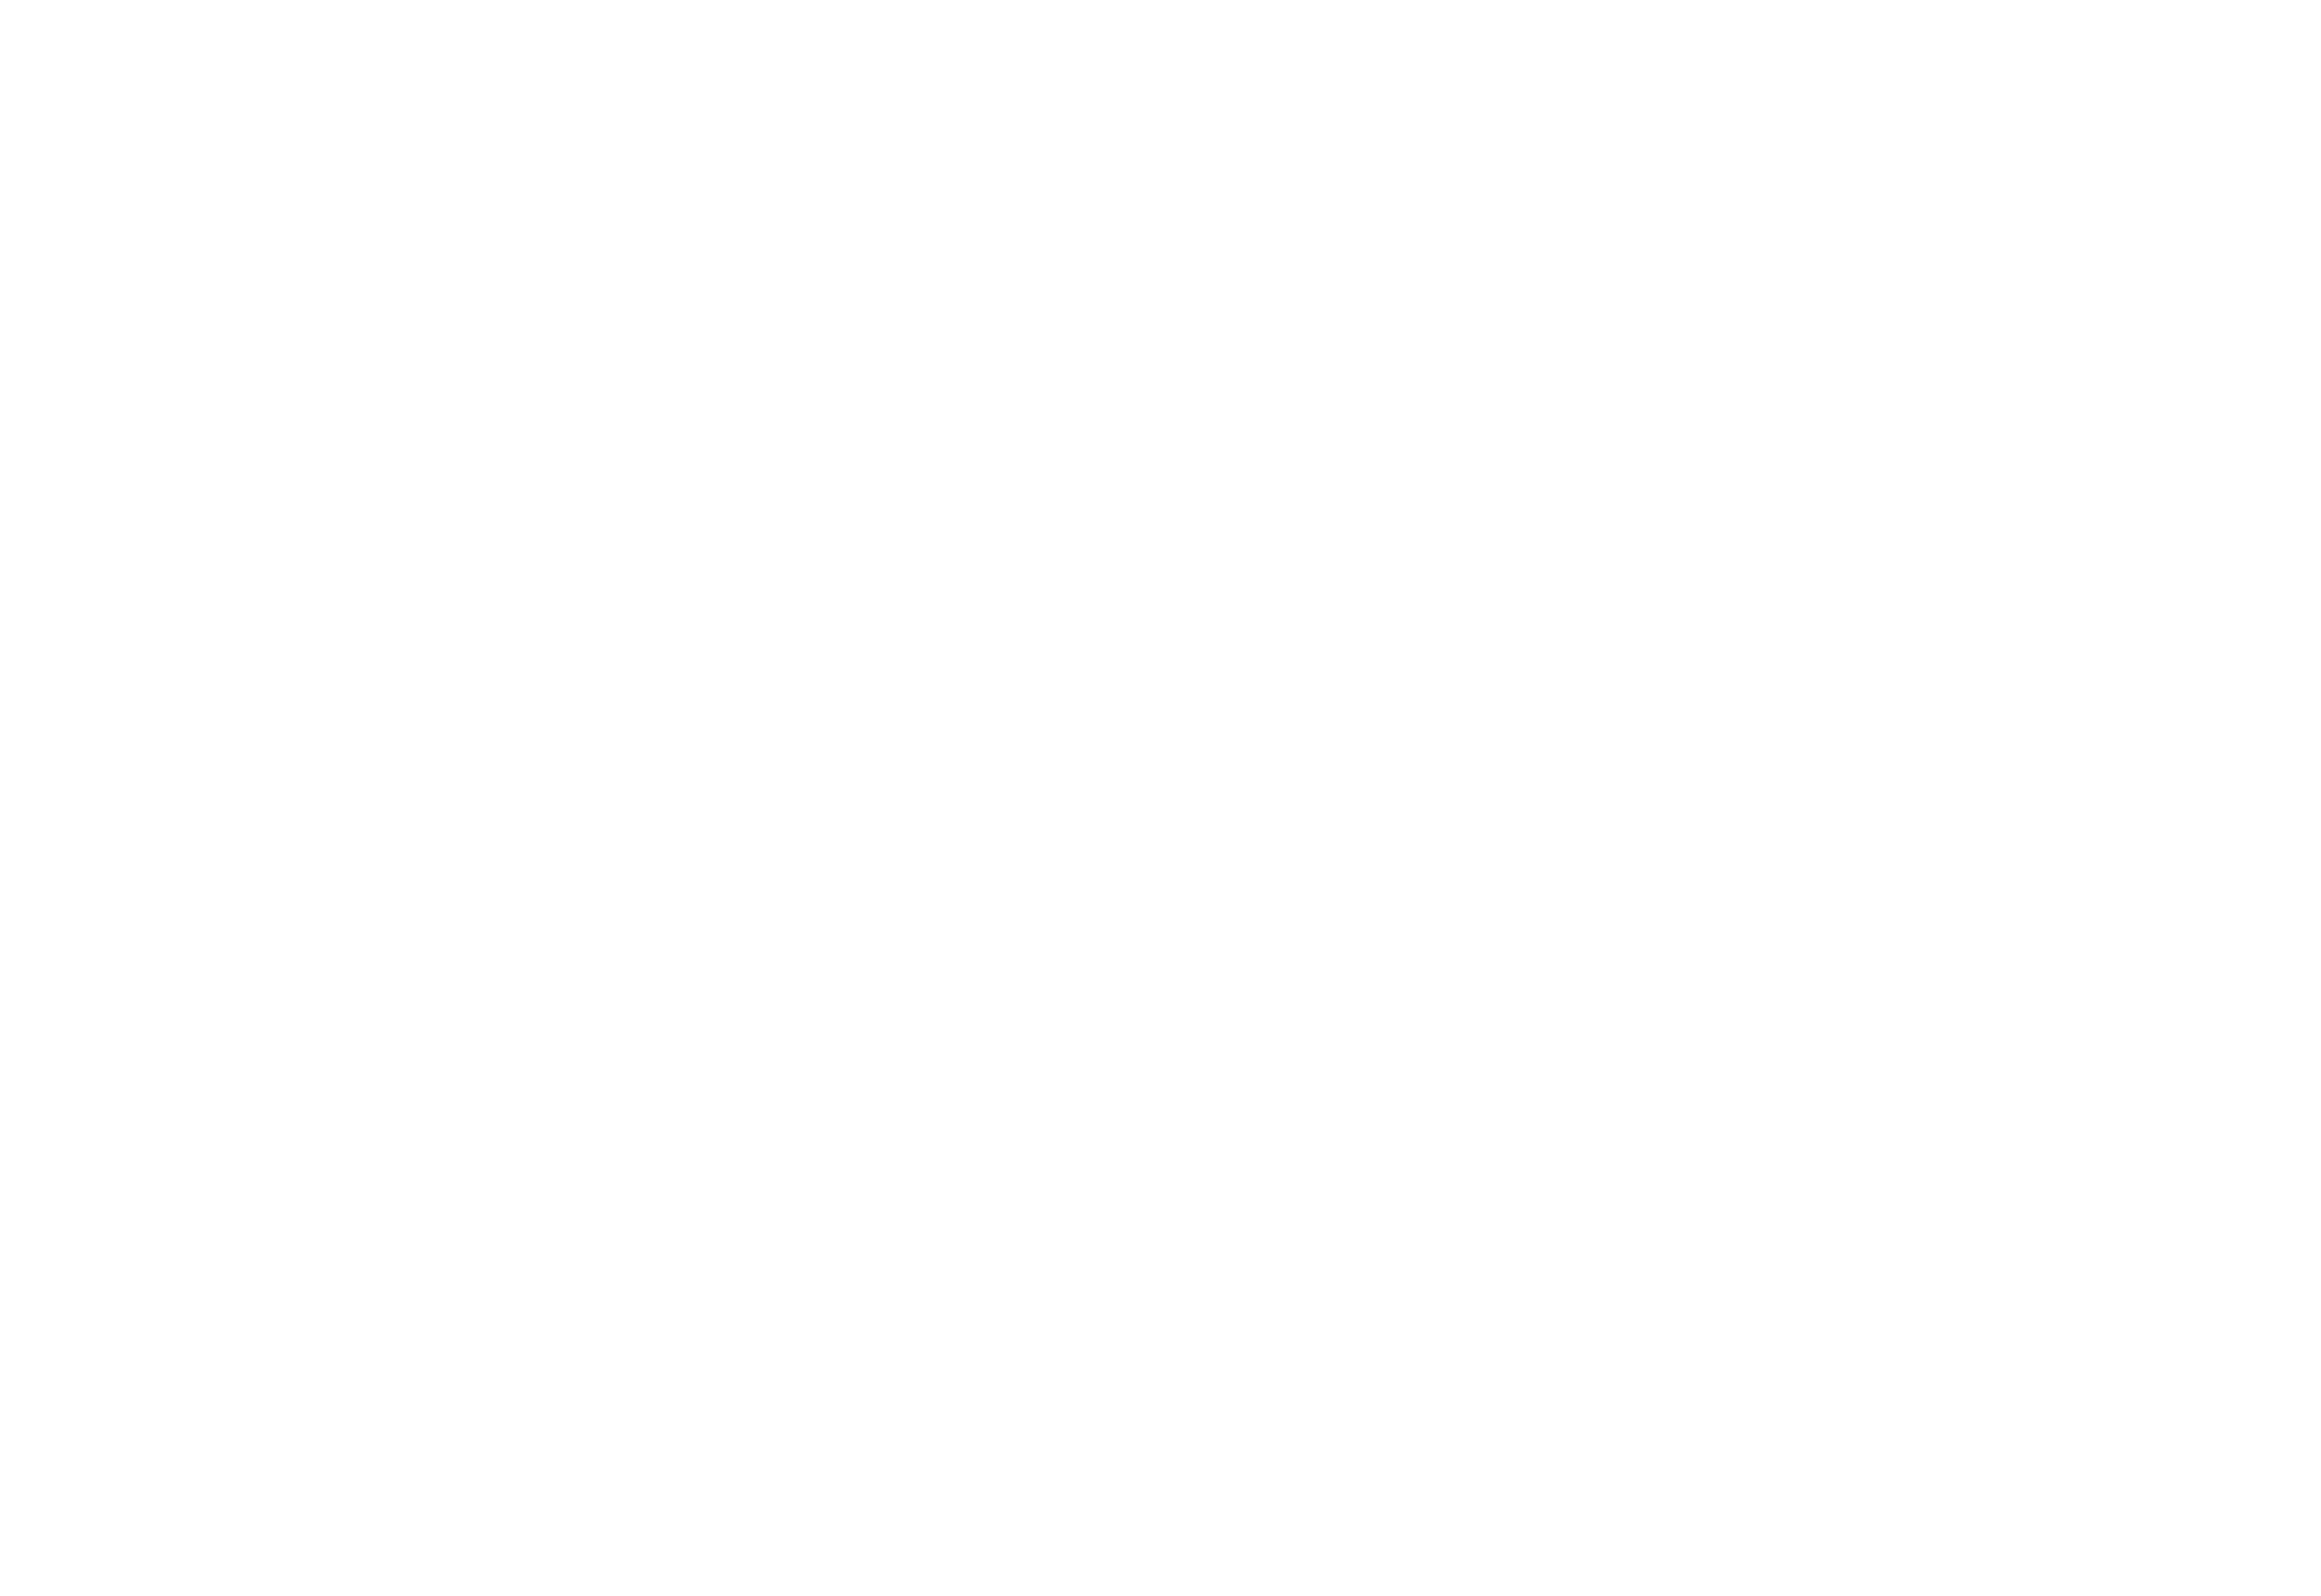 Bonafide Basketball Articles and Podcasts